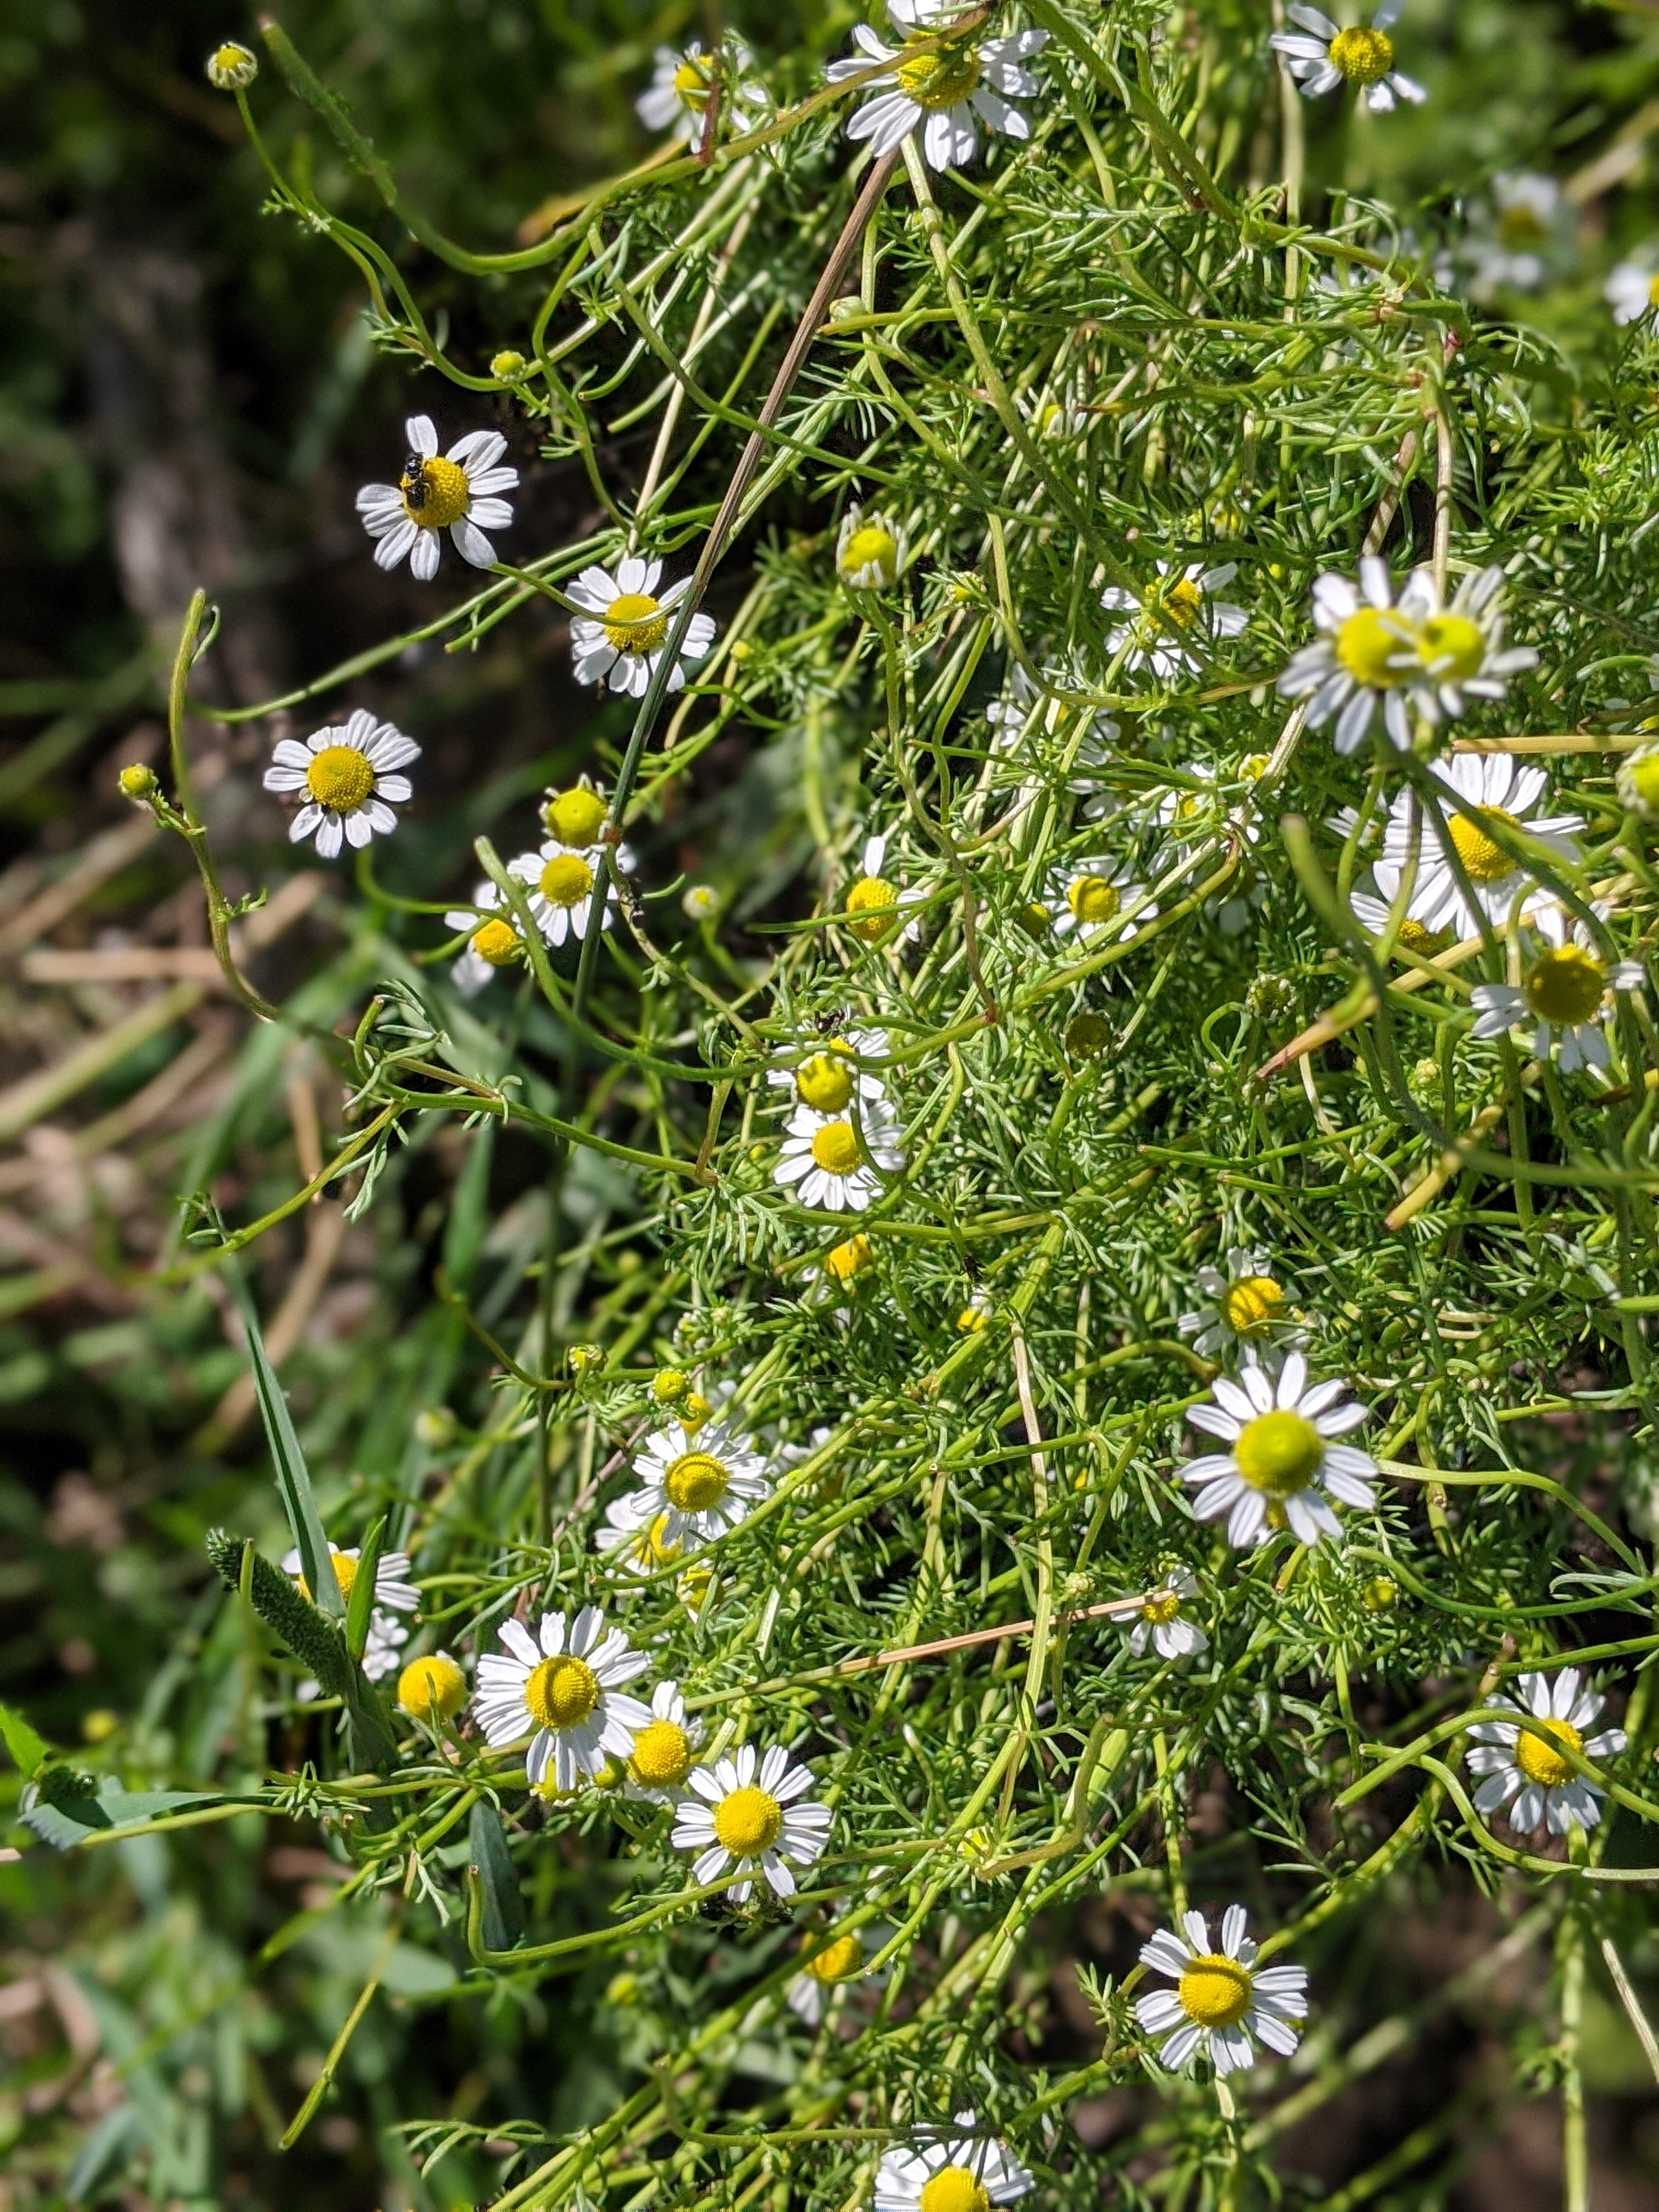 daisy-like blooms of the chamomile plant